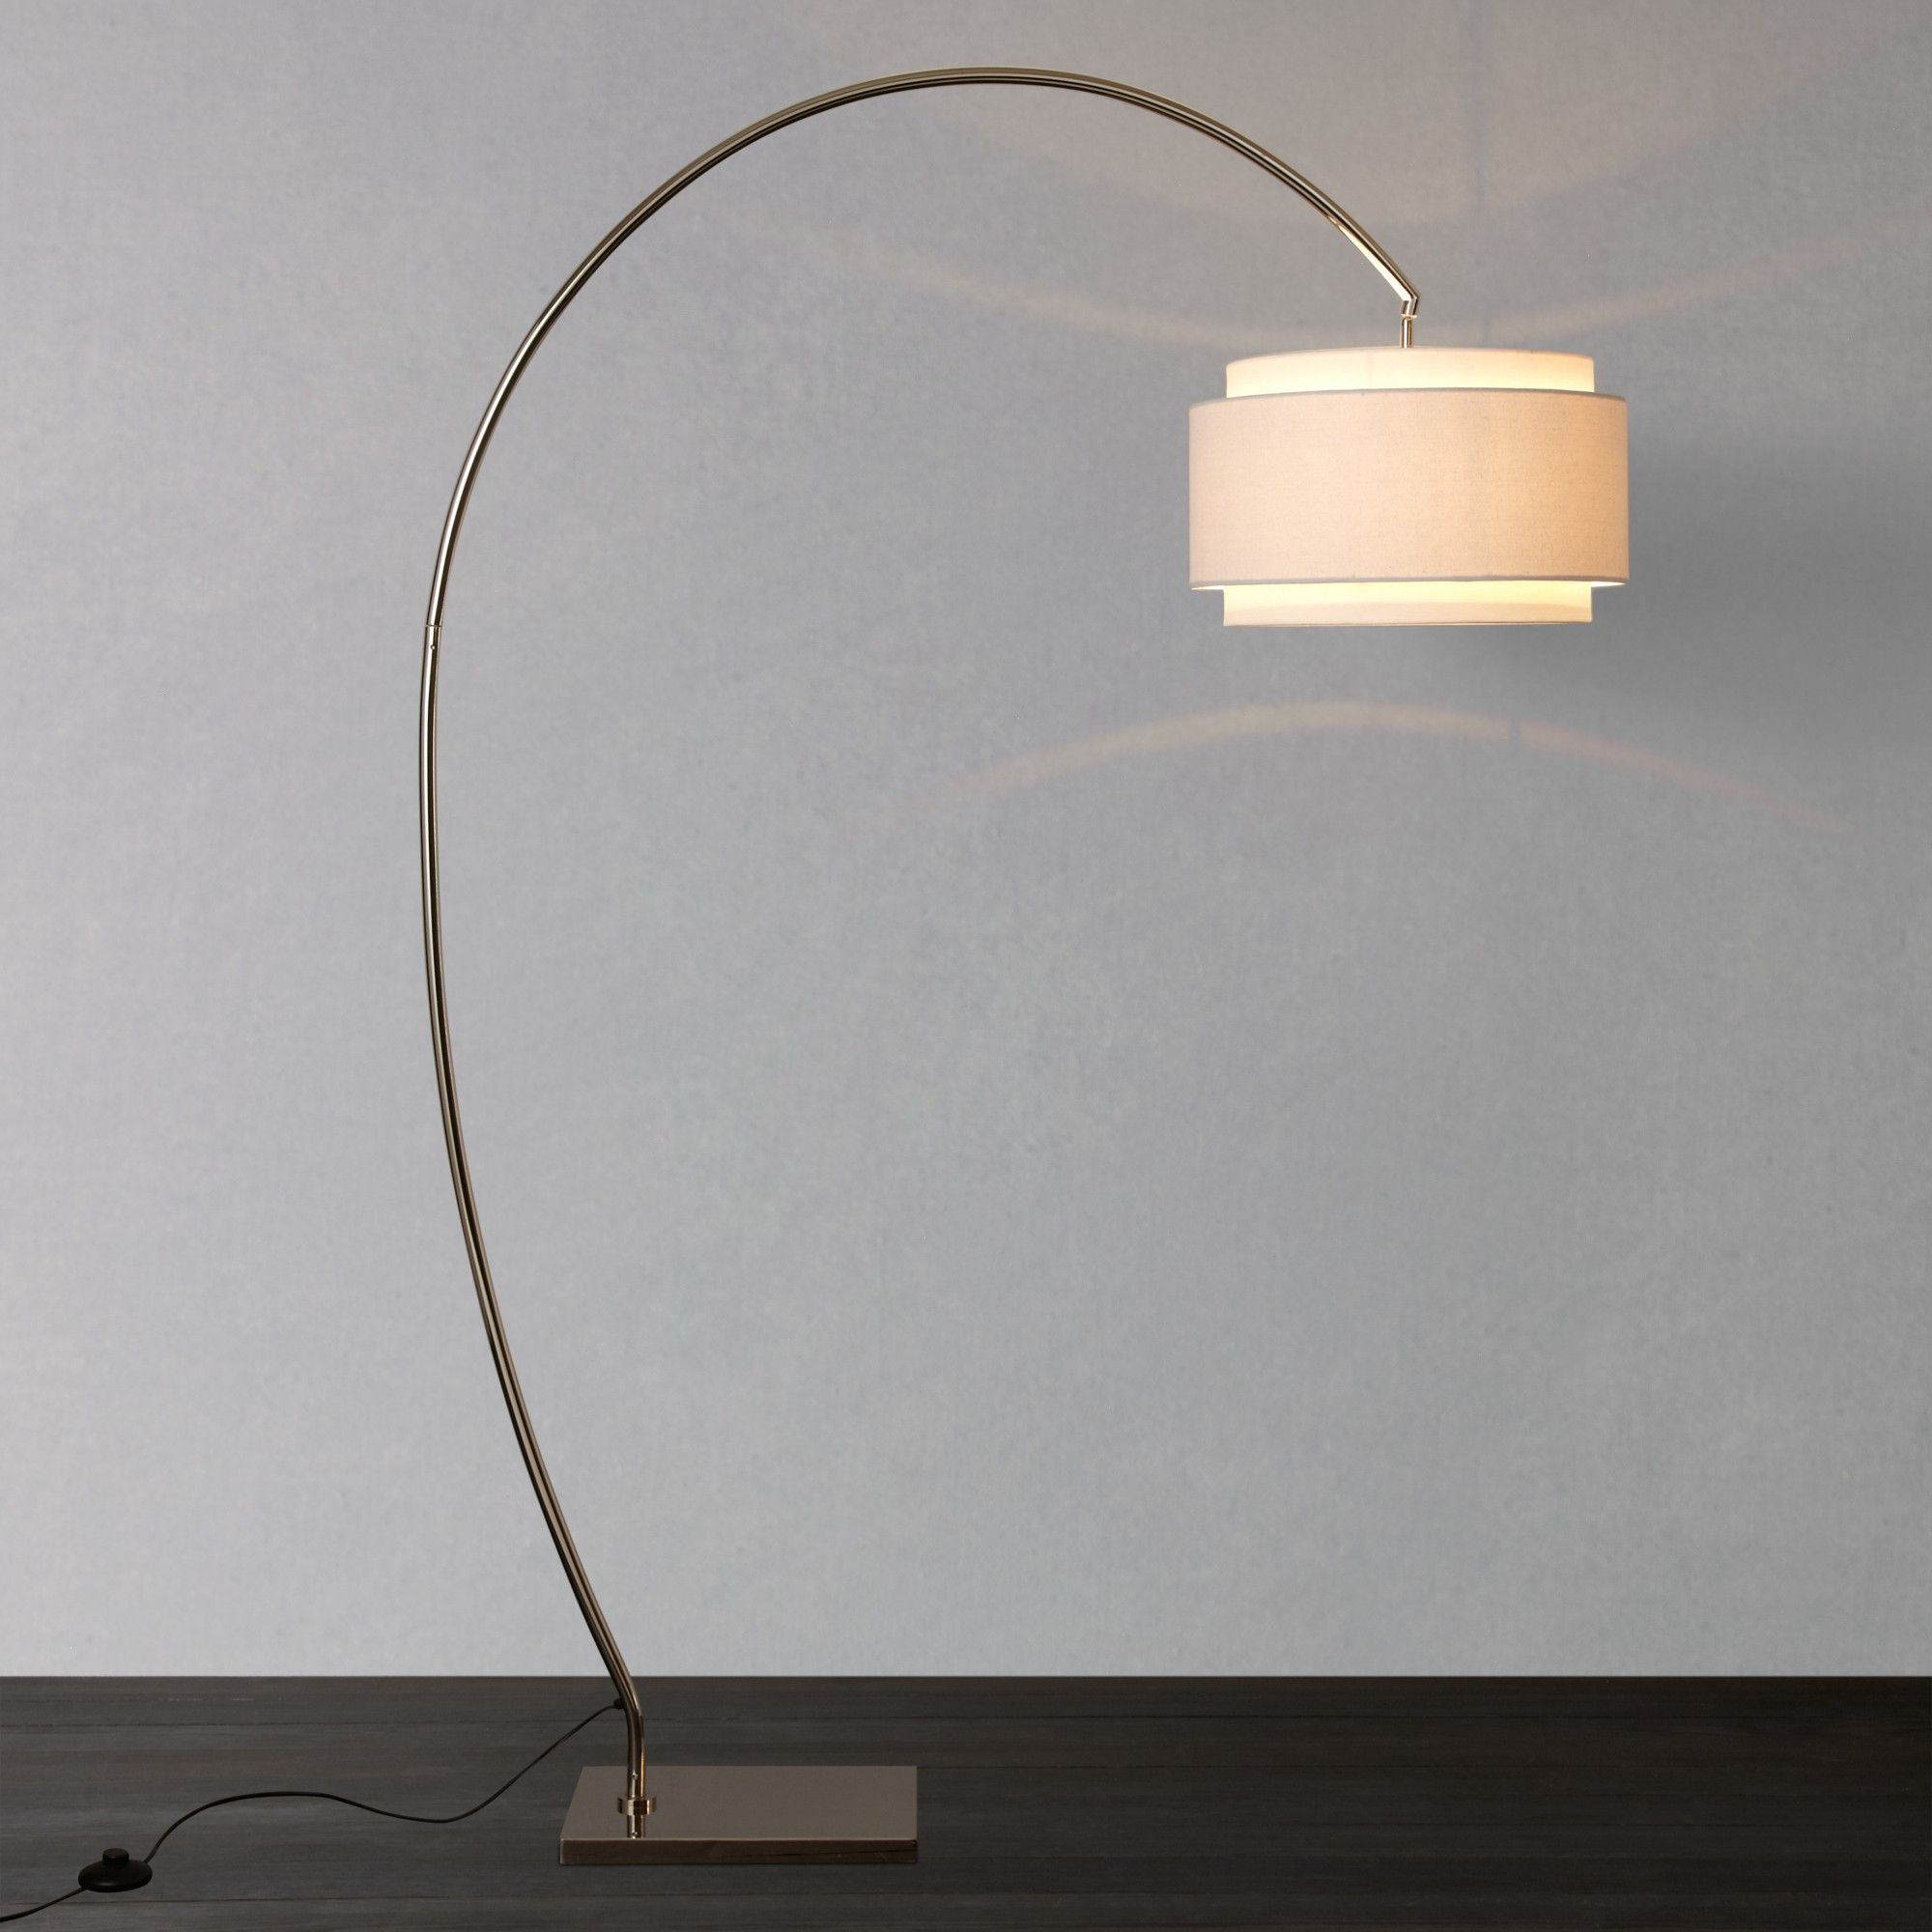 Evie curve floor lamp john lewis floor lamp and curves buy john lewis evie curve floor lamp online at johnlewis geotapseo Image collections